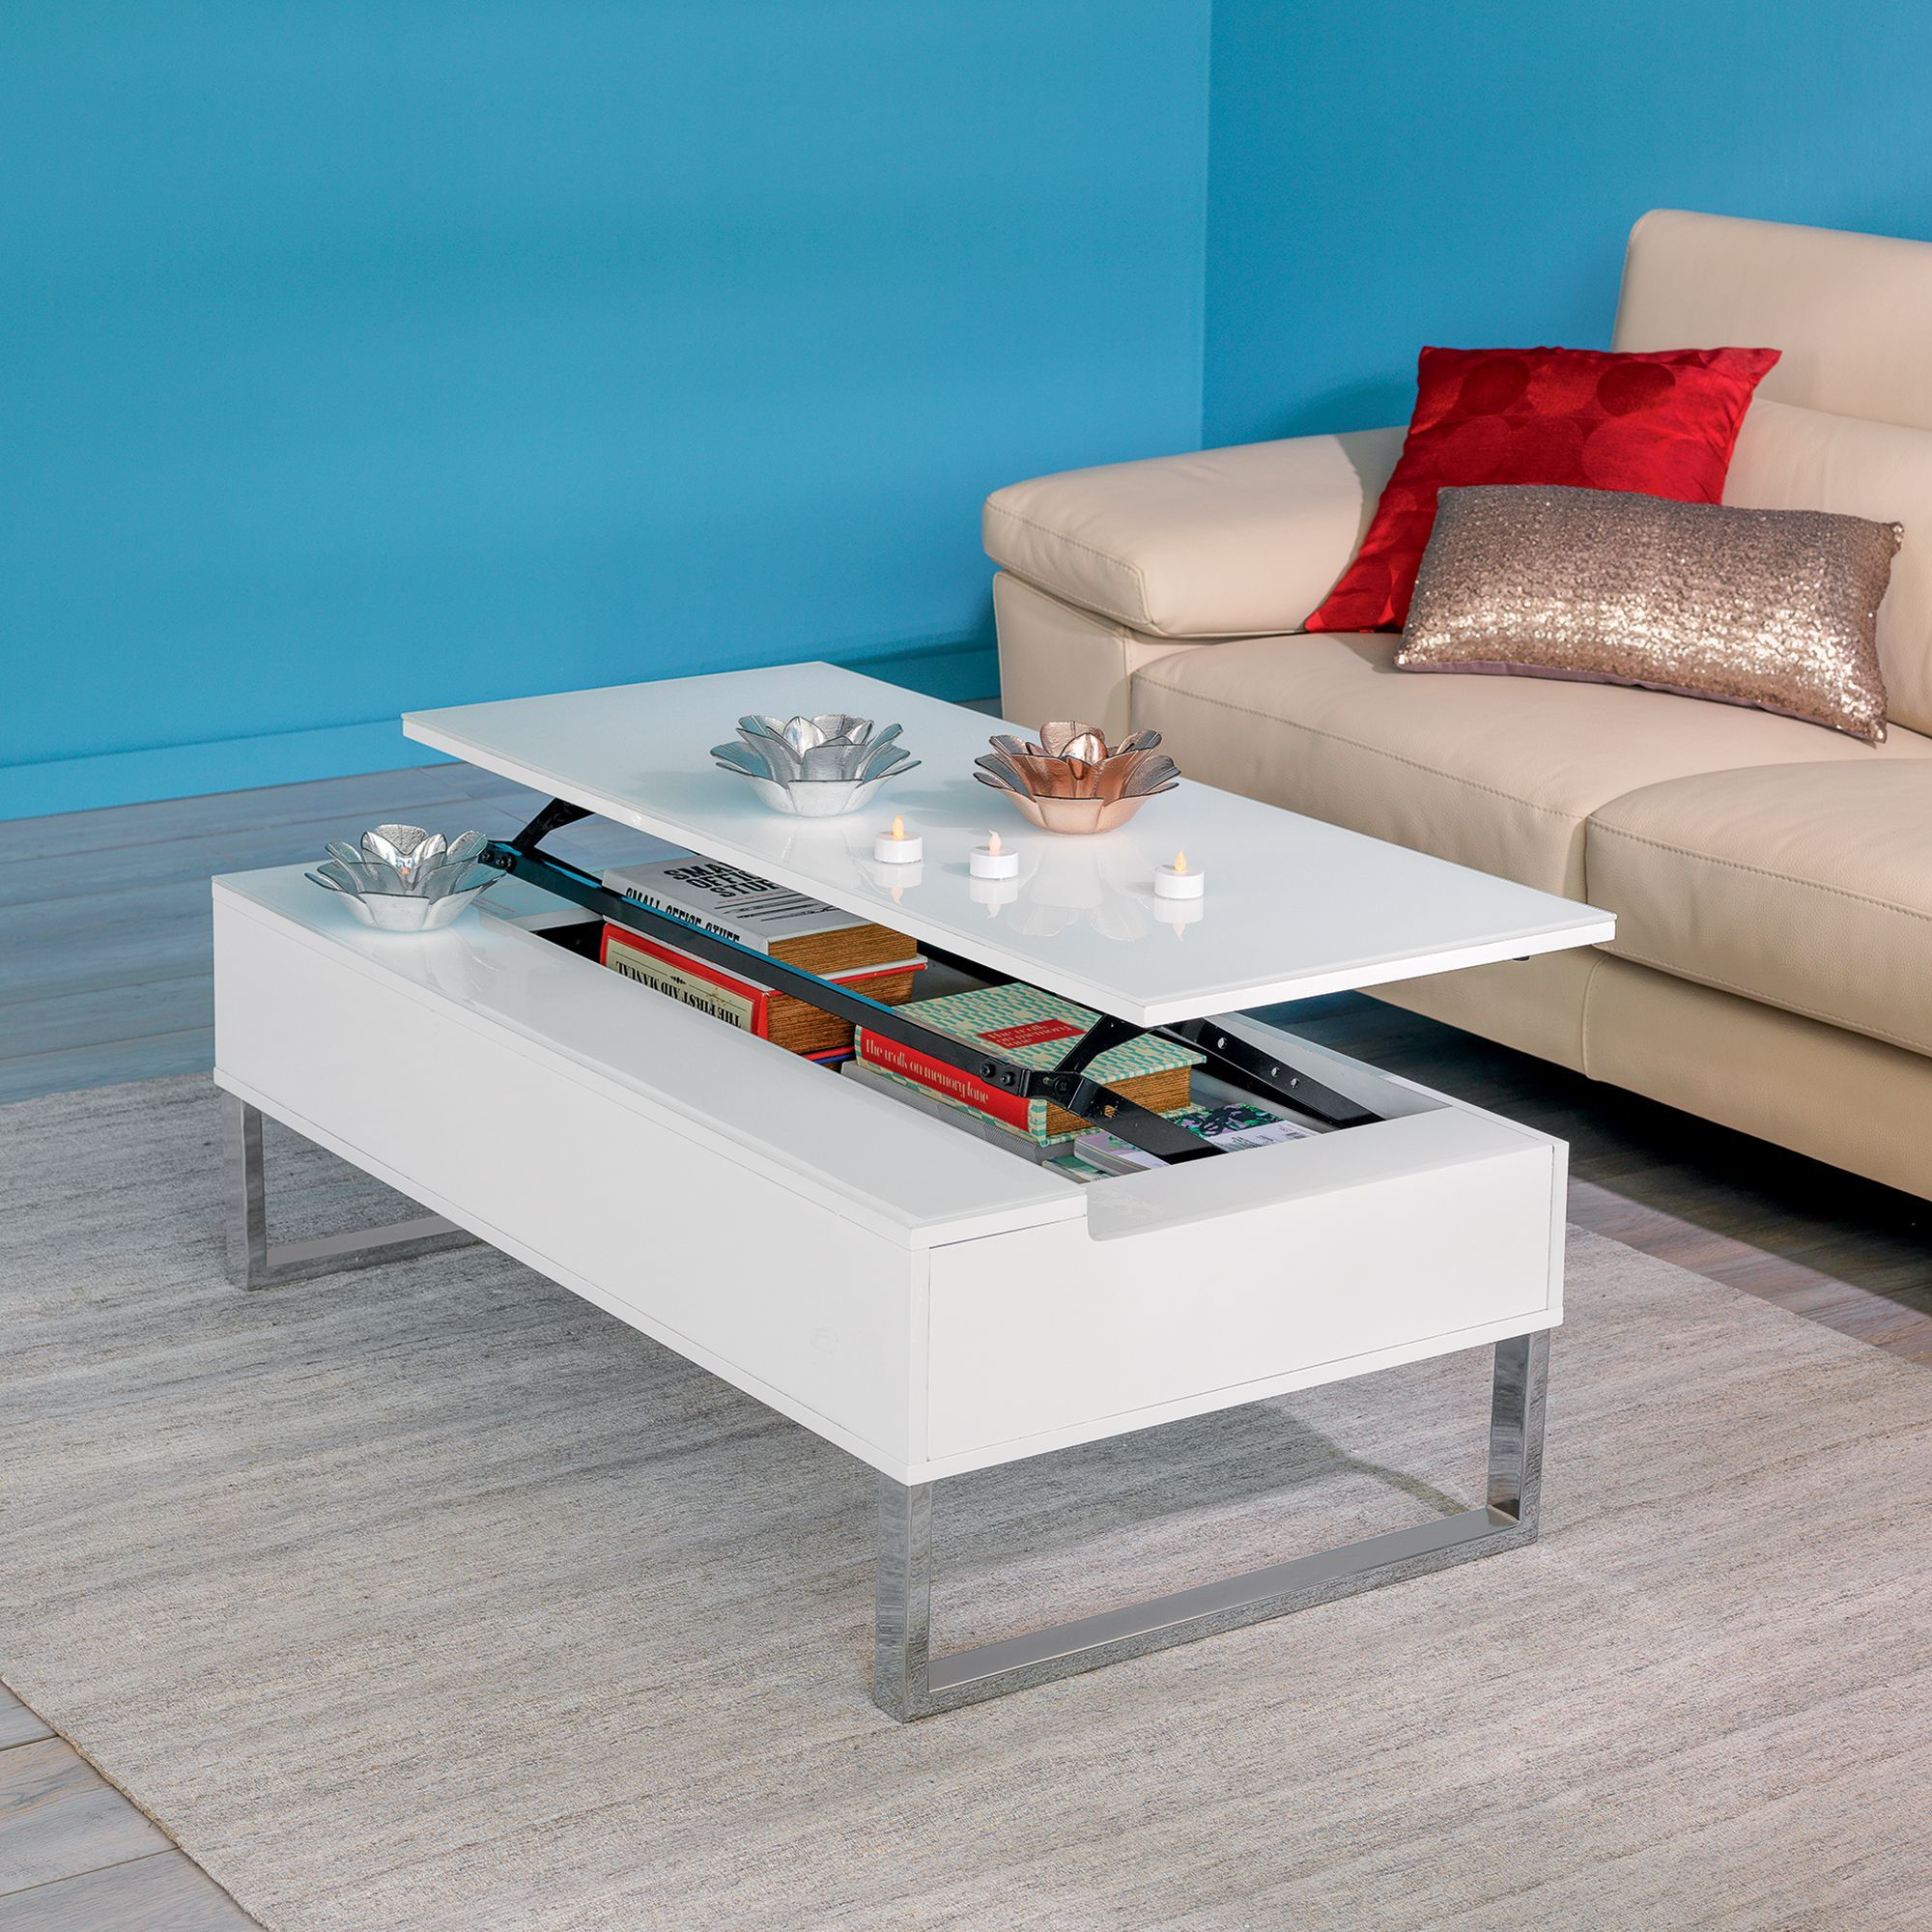 Tables De Salon Alinea Table Basse Avec Tablette Relevable Blanche Blanc Novy